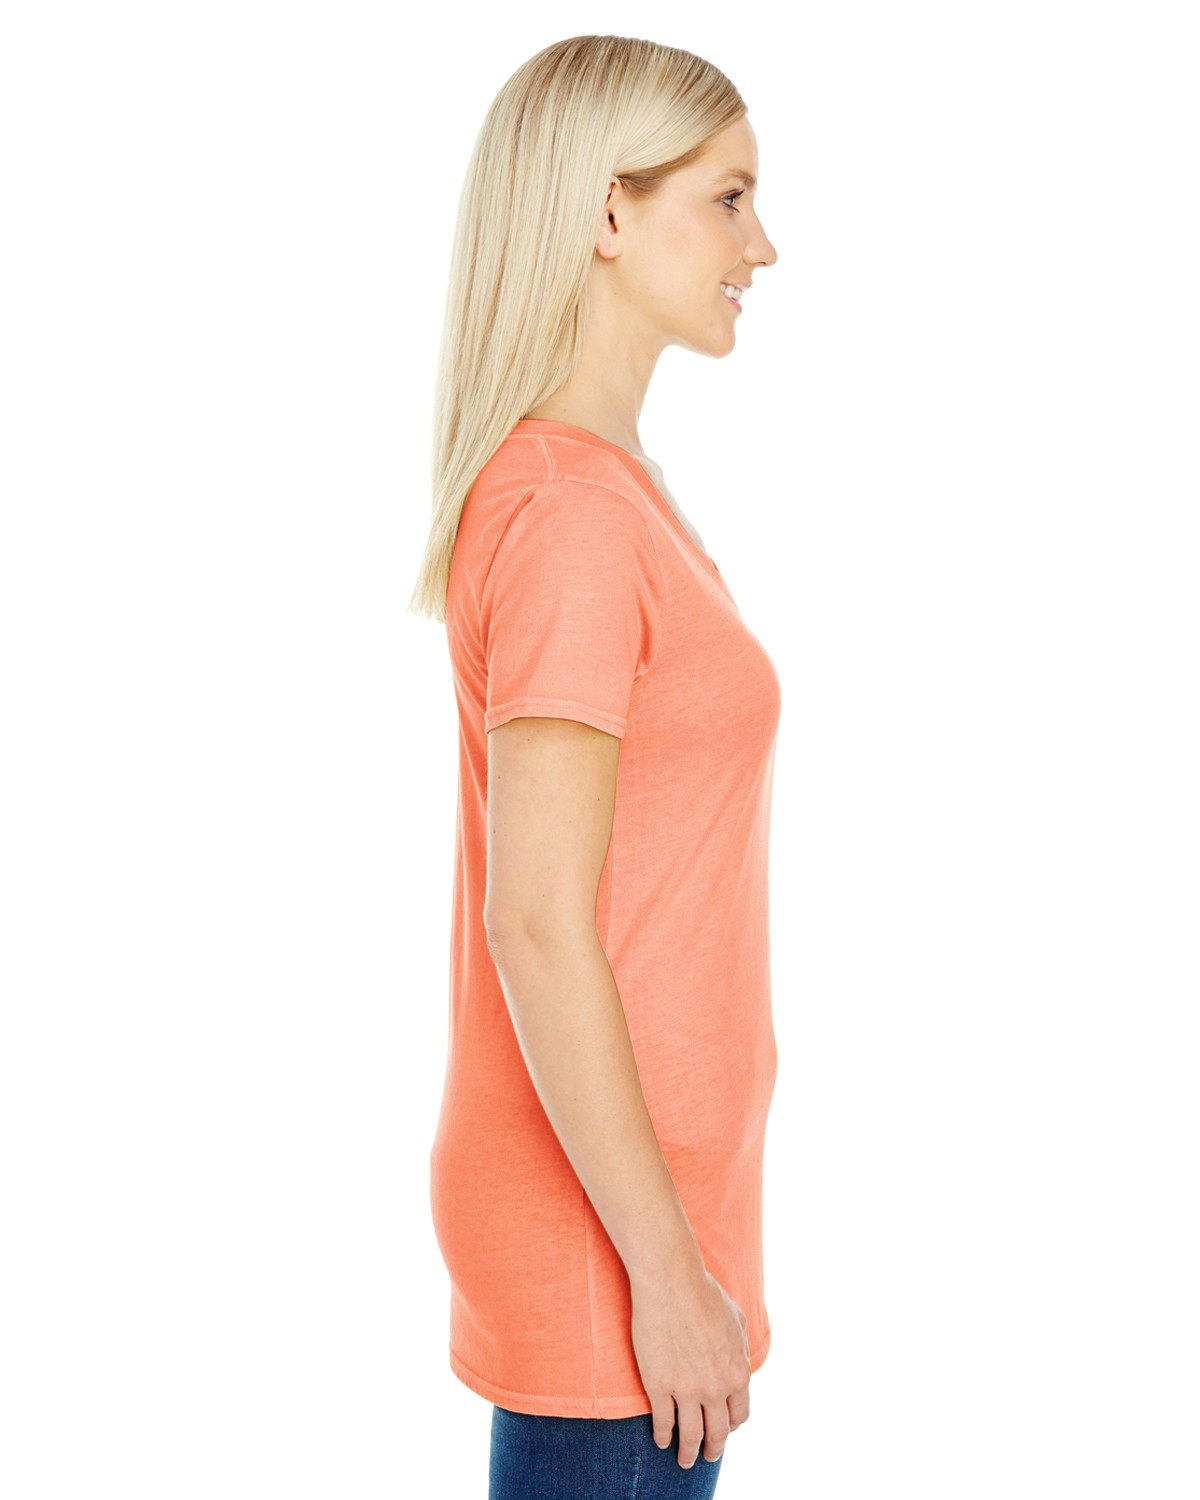 230B Threadfast Apparel TANGERINE